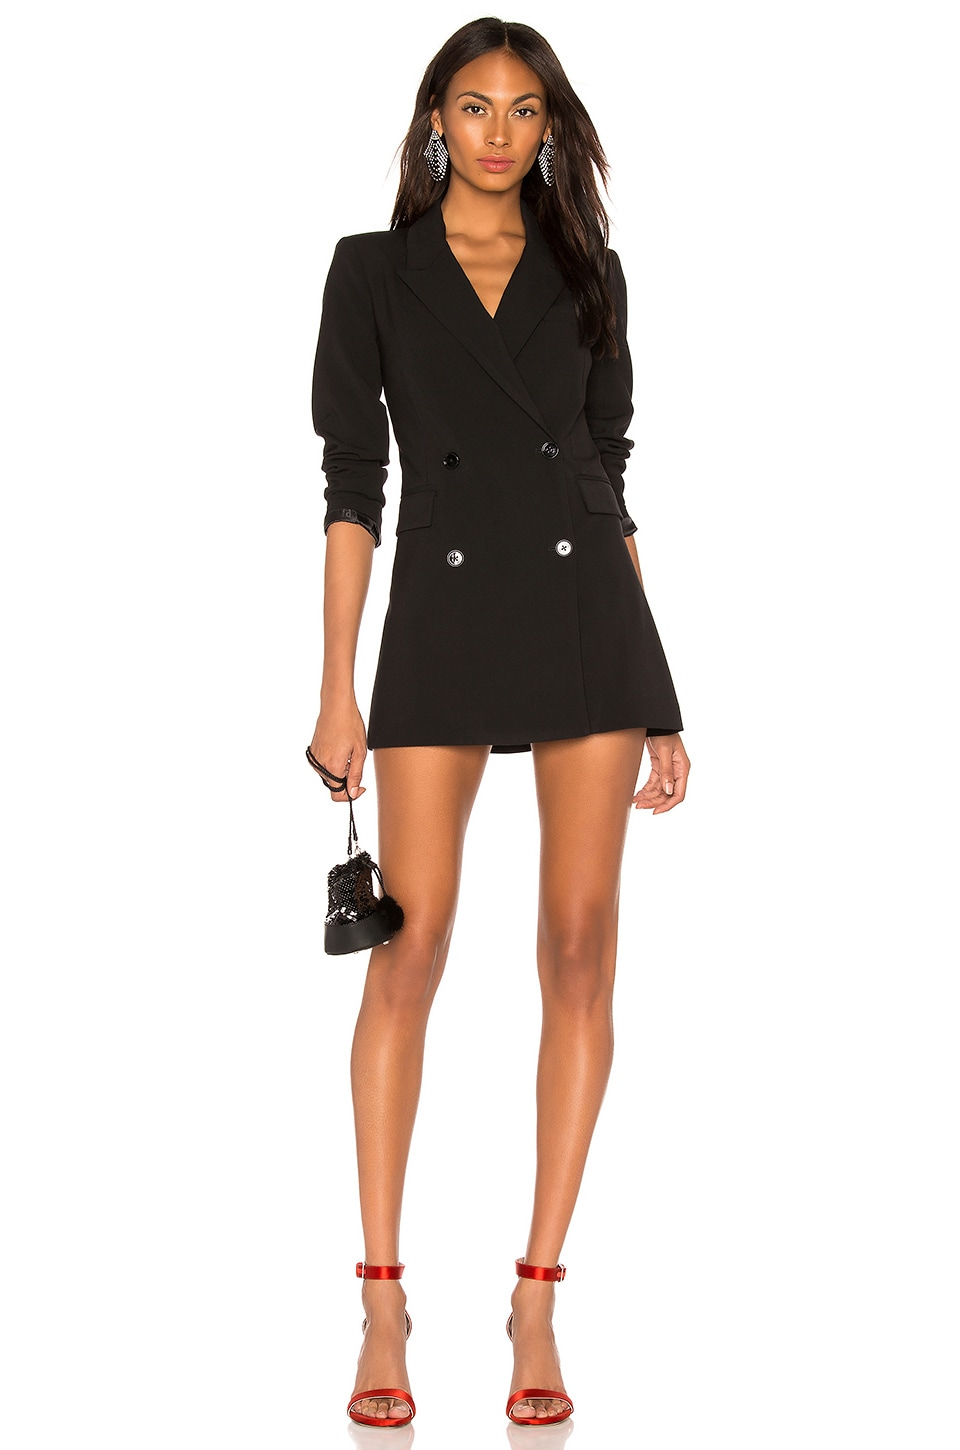 LPA Double Breasted Blazer Dress in Black